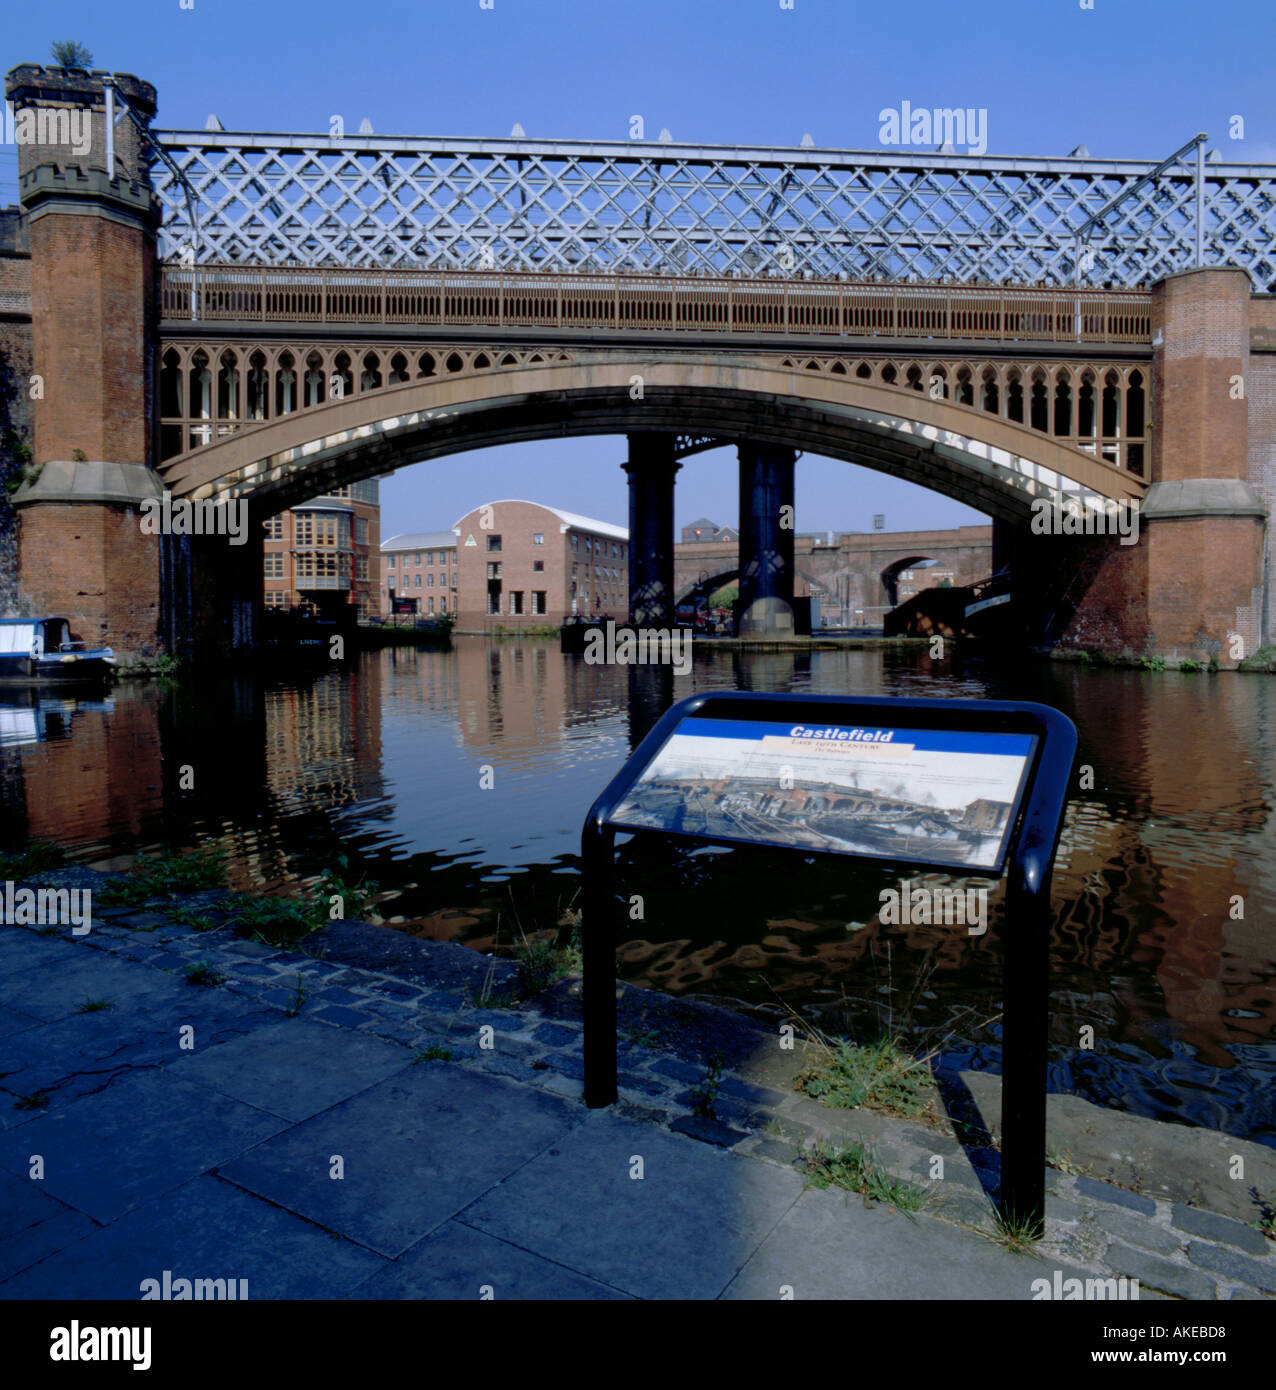 Cast iron arch railway bridge over the Duke of Bridgewater's Canal, Castlefield Urban Heritage Park, Manchester, Stock Photo